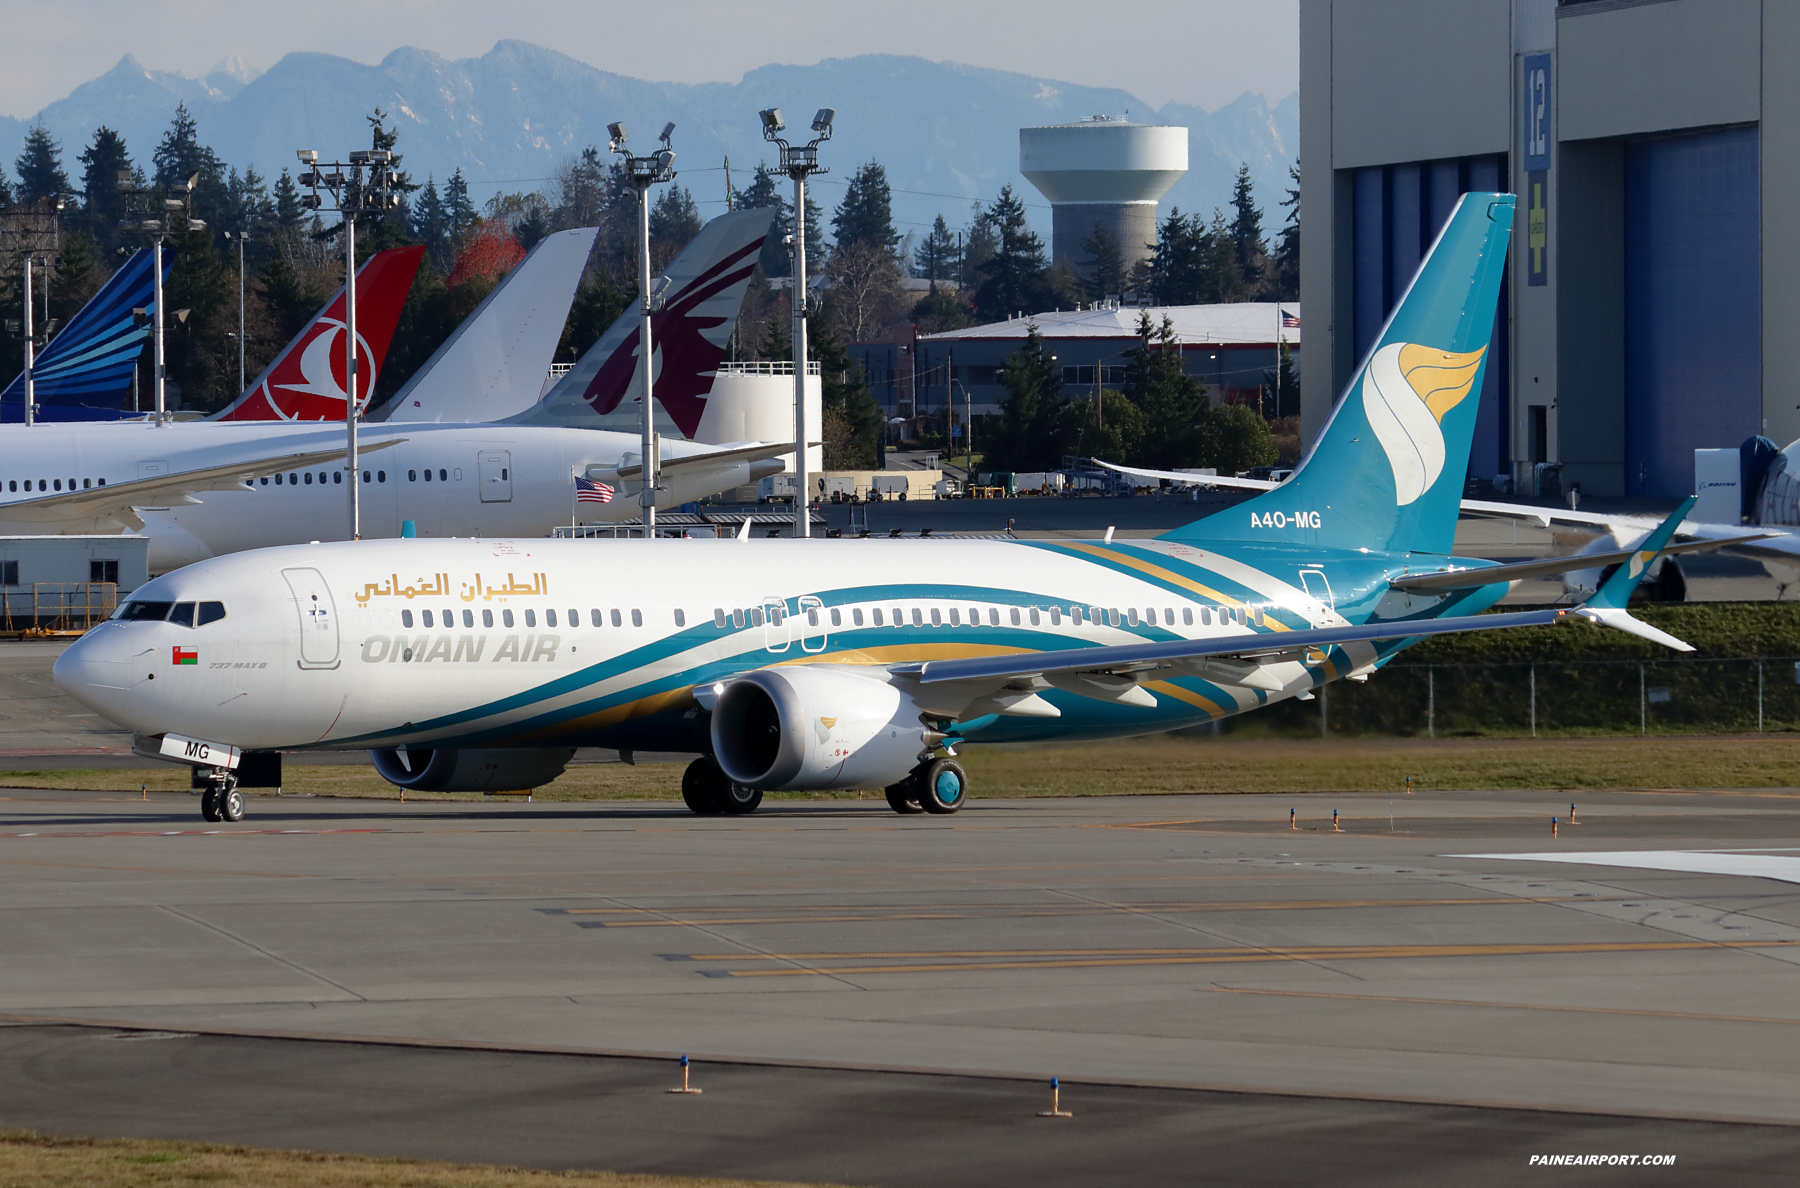 Oman Air 737 A4O-MG at Paine Field